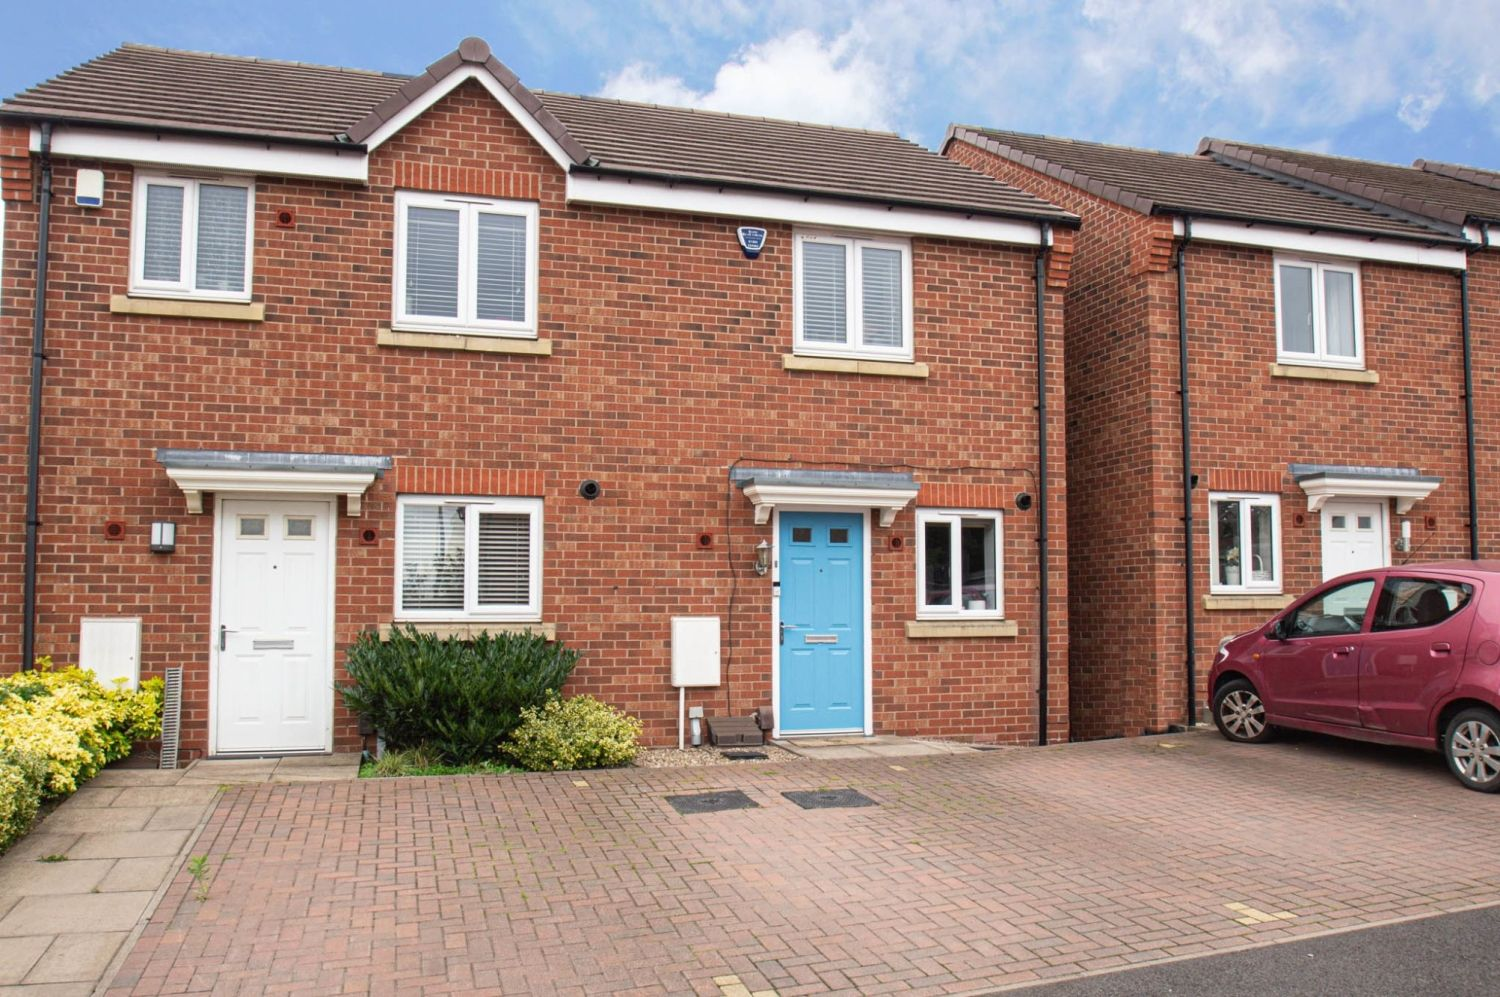 2 bed semi-detached for sale in Bobeche Place, Kingswinford - Property Image 1